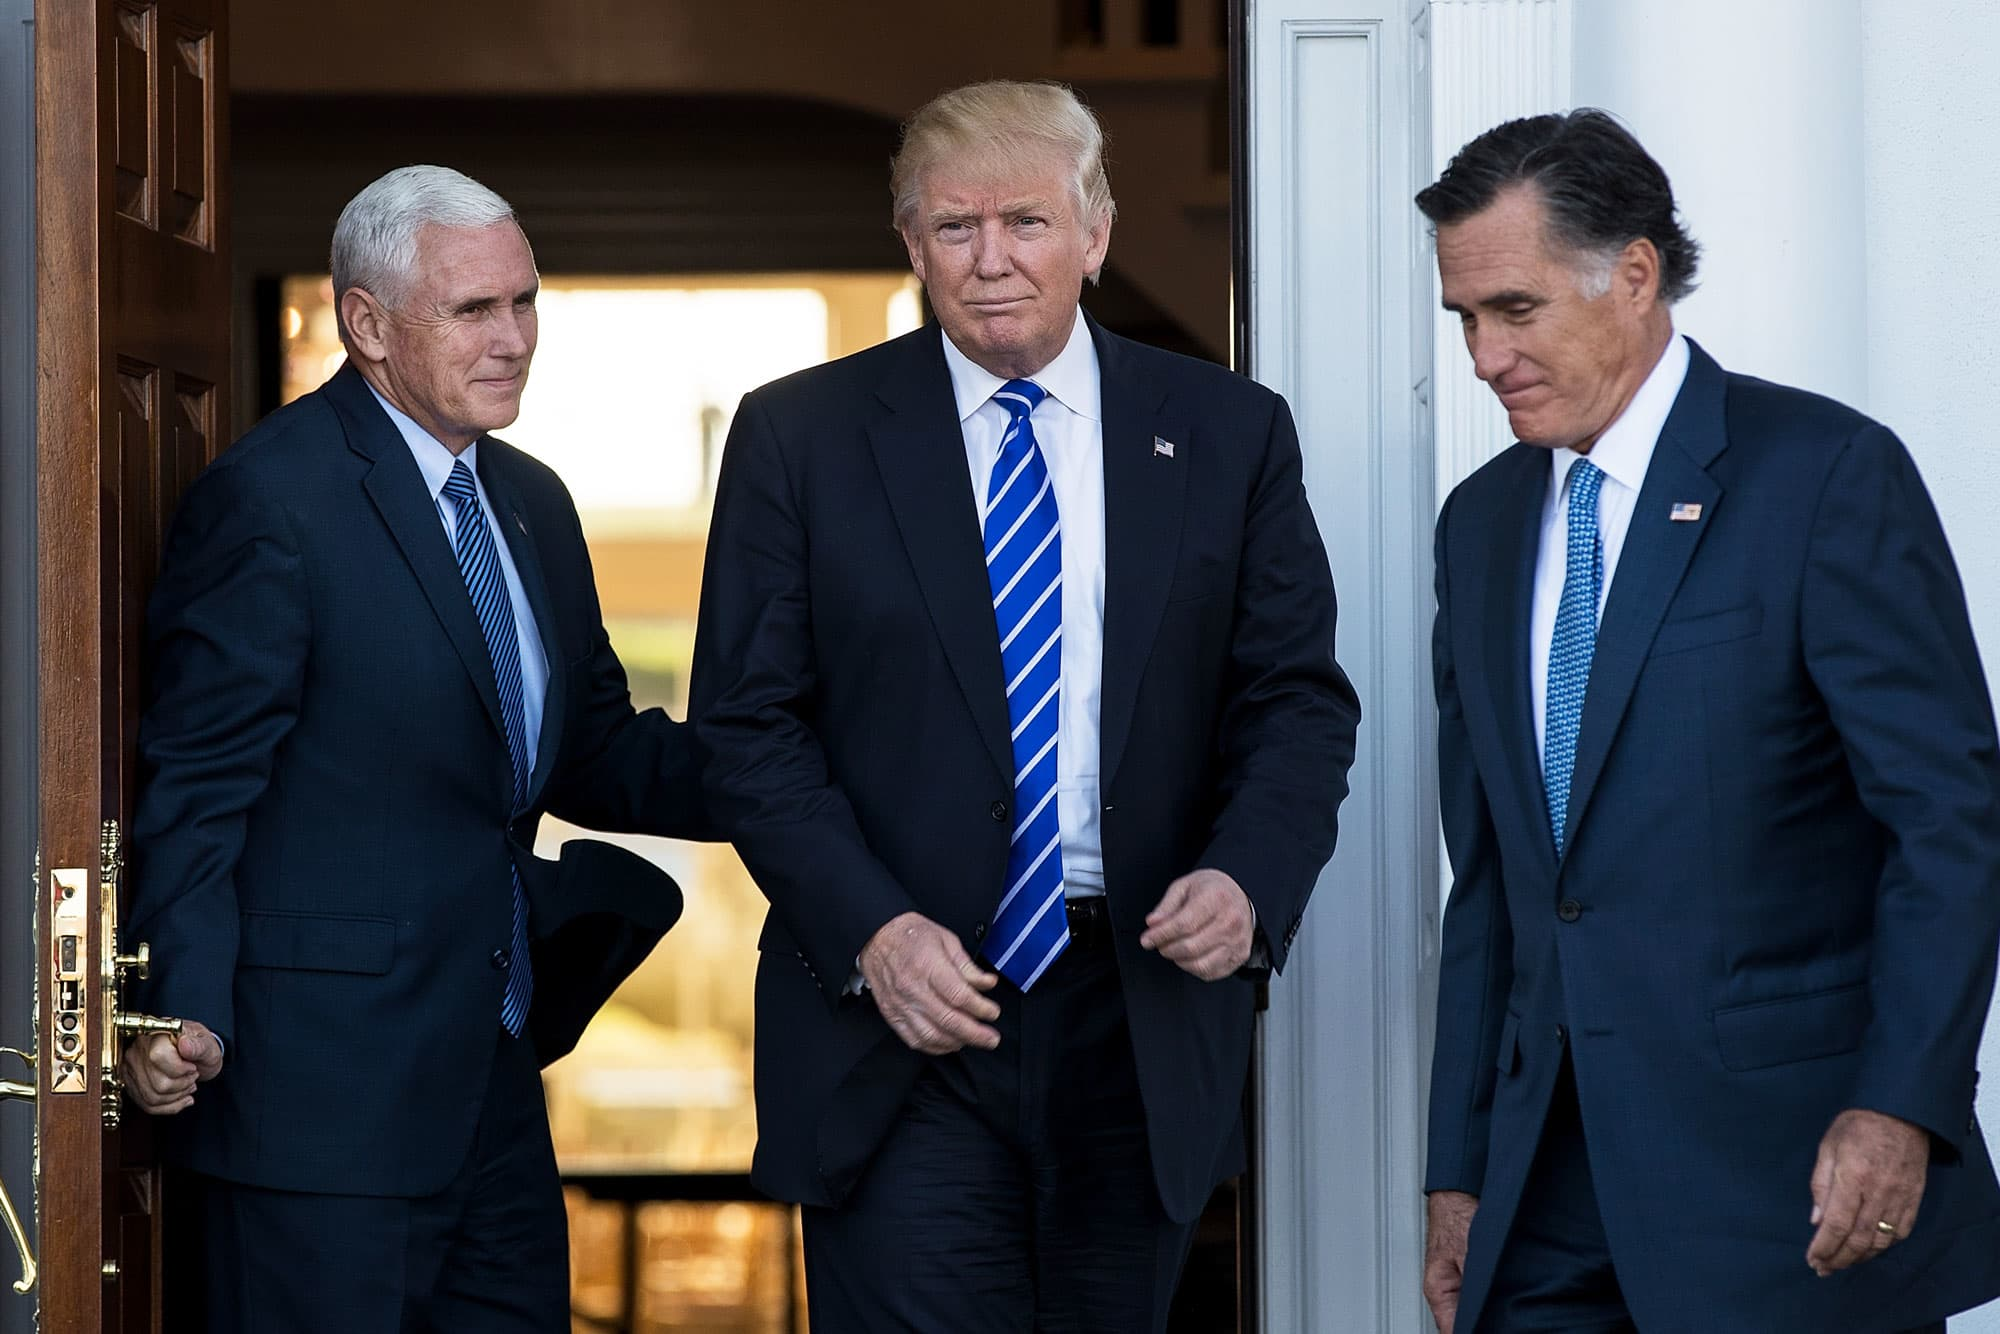 Trump meets with Mitt Romney, one of his harshest Republican critics